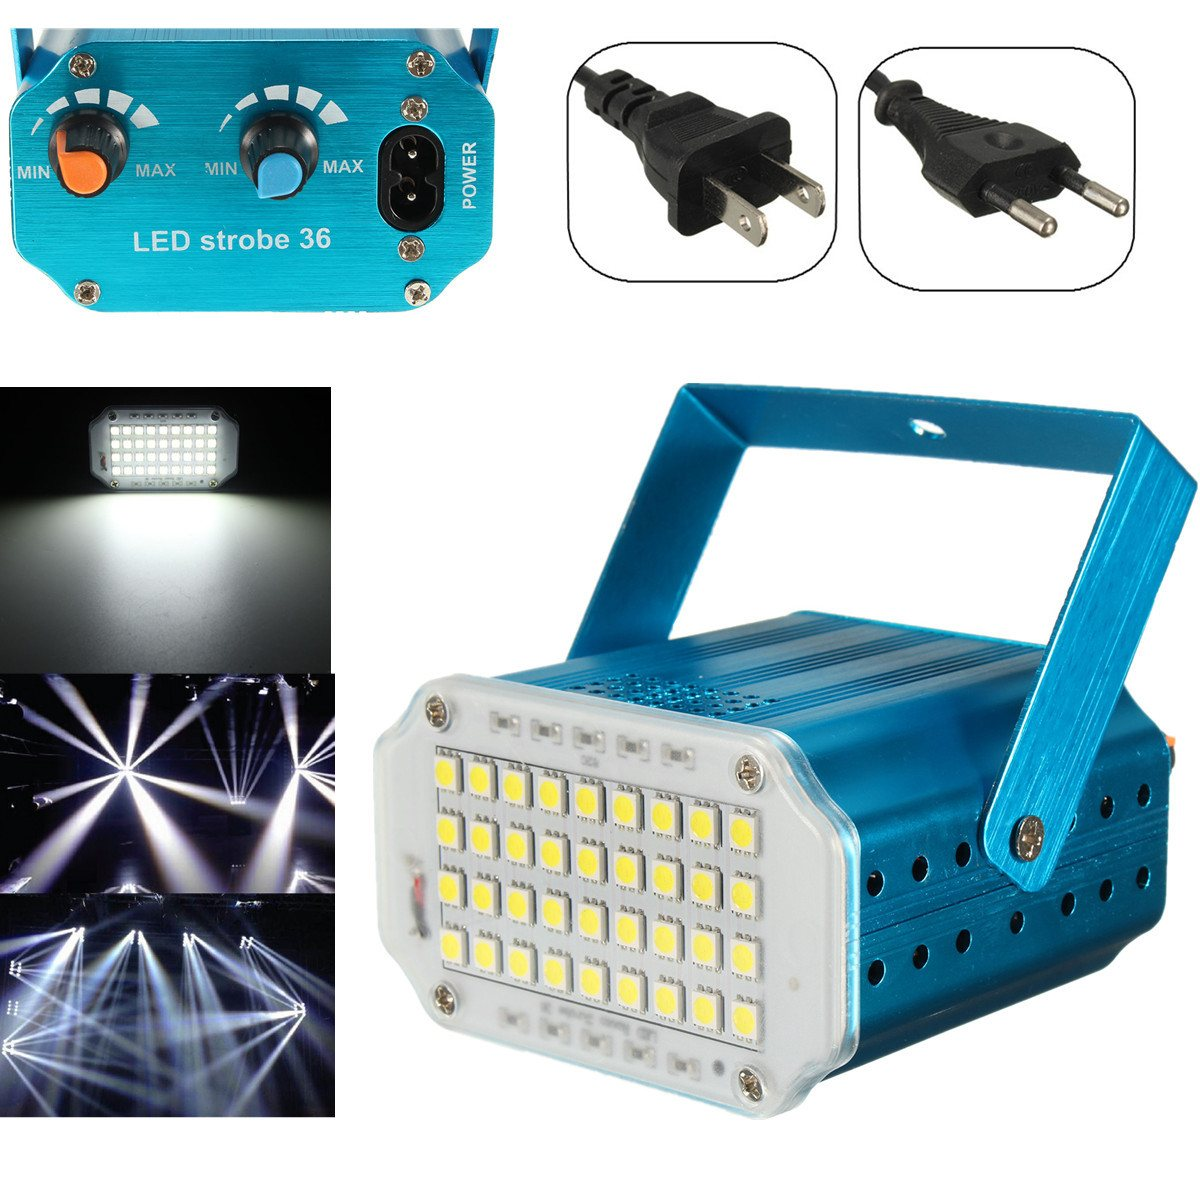 Adjustment LED RGB White Lighting Projector Laser Strobe Stage Light Effect DJ Disco Party Club KTV Night Lamp Bulb US EU Plug transctego laser disco light stage led lumiere 48 in 1 rgb projector dj party sound lights mini laser lamp strobe bar lamps page 5